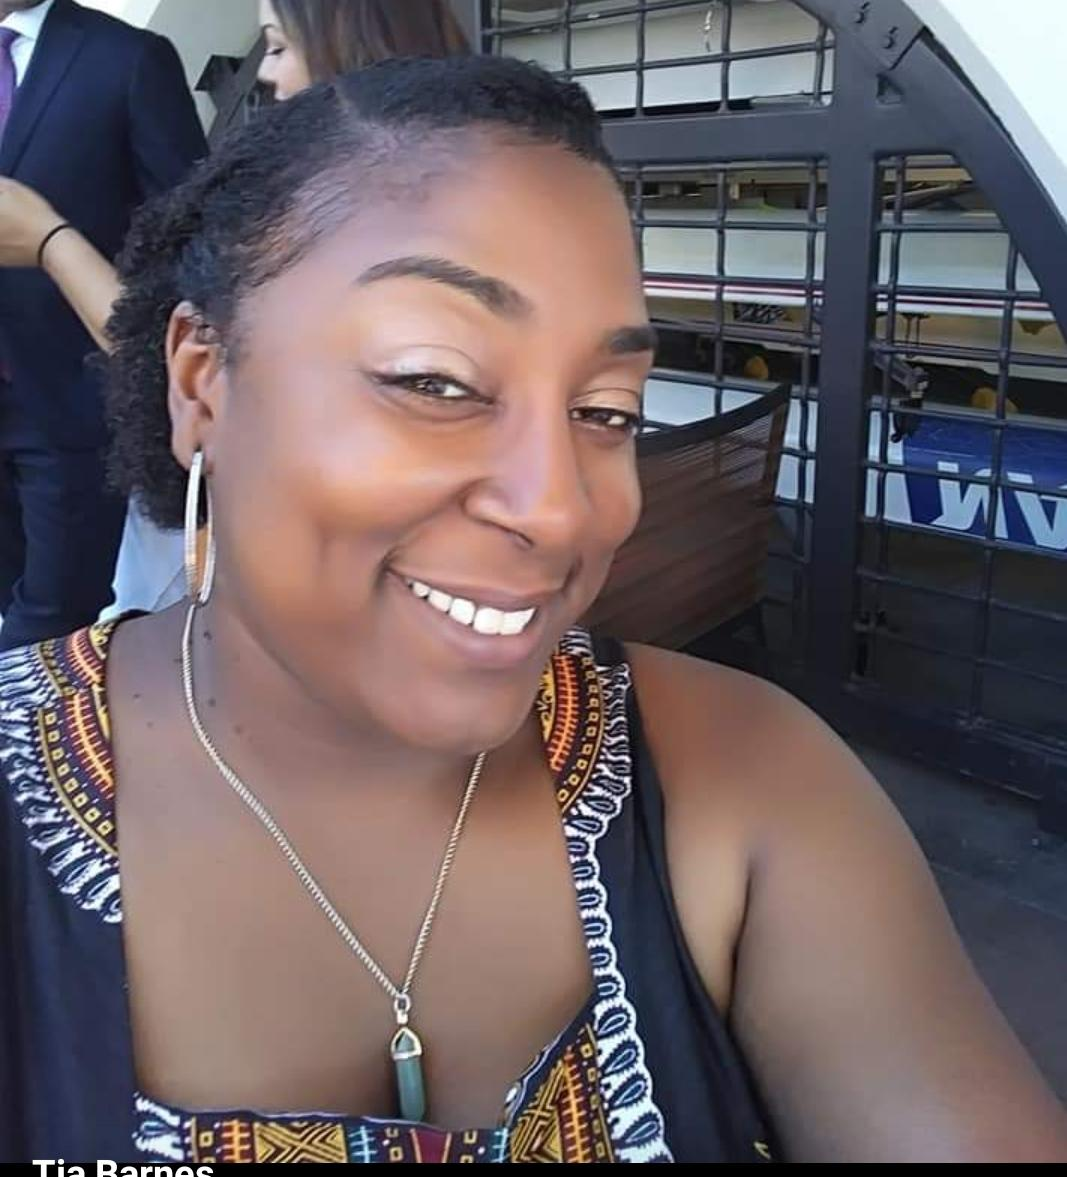 Tia-Barnes, The Black community takes a psychological ass whoopin' in battle with COVID-19 pandemic, Local News & Views